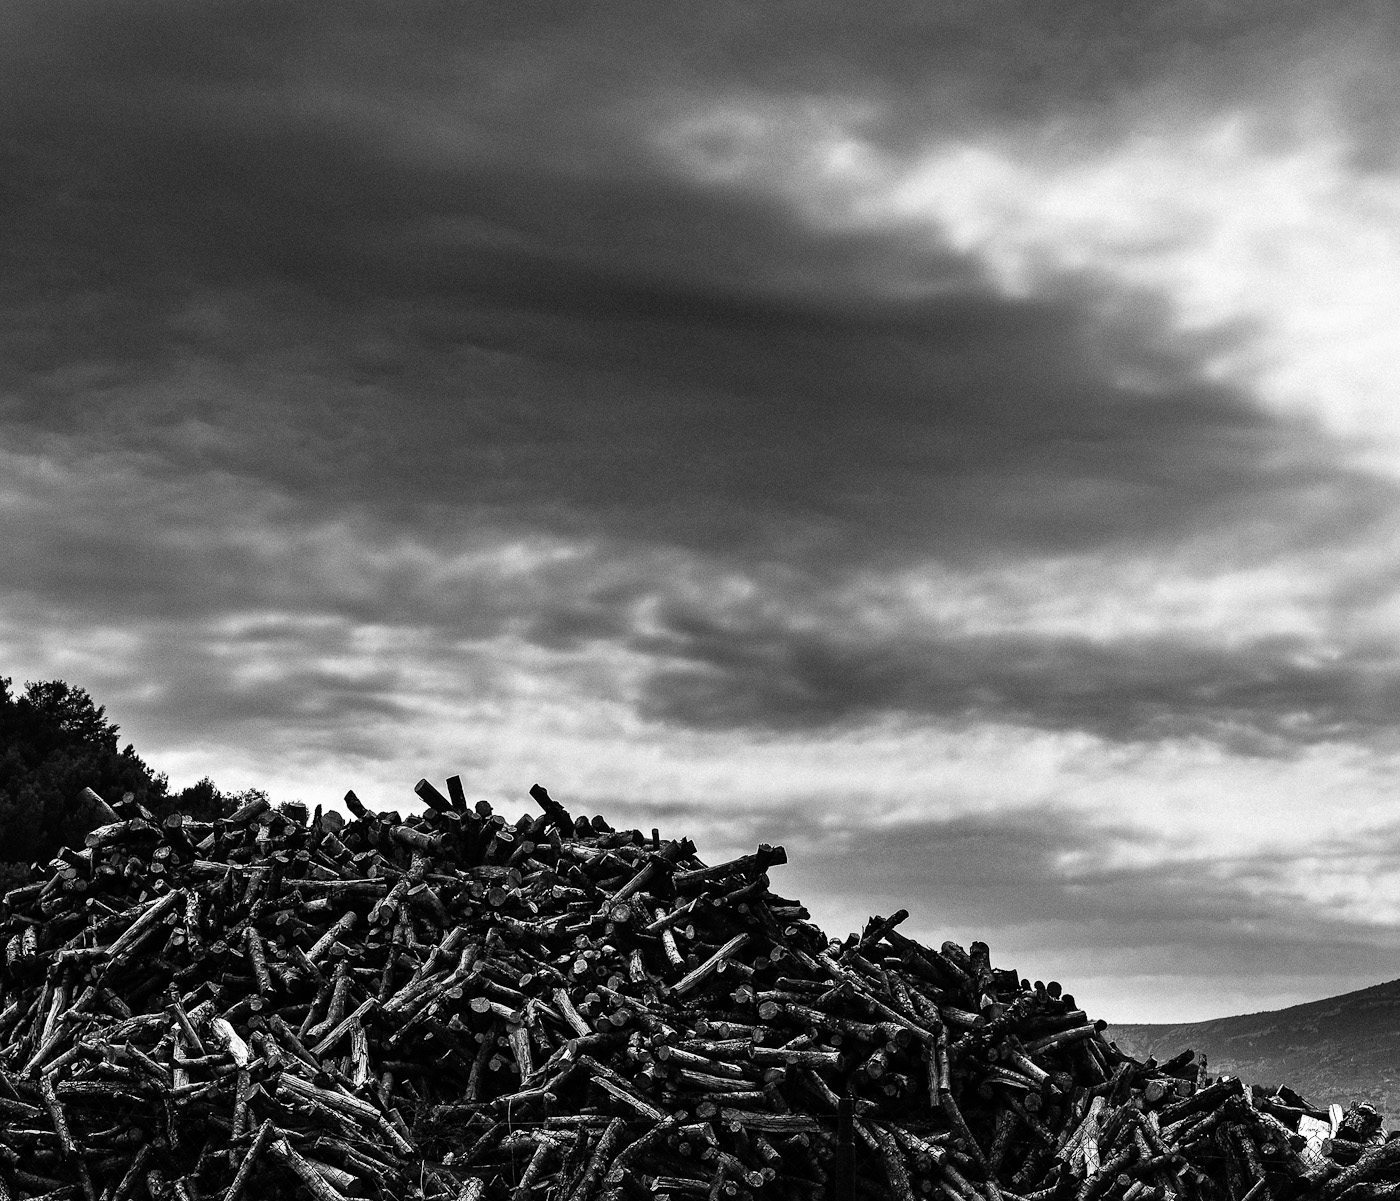 A pile of logs against an stormy sky. Olympus OM-D E-M5 & Olympus Digital Zuiko 45mm f1.8